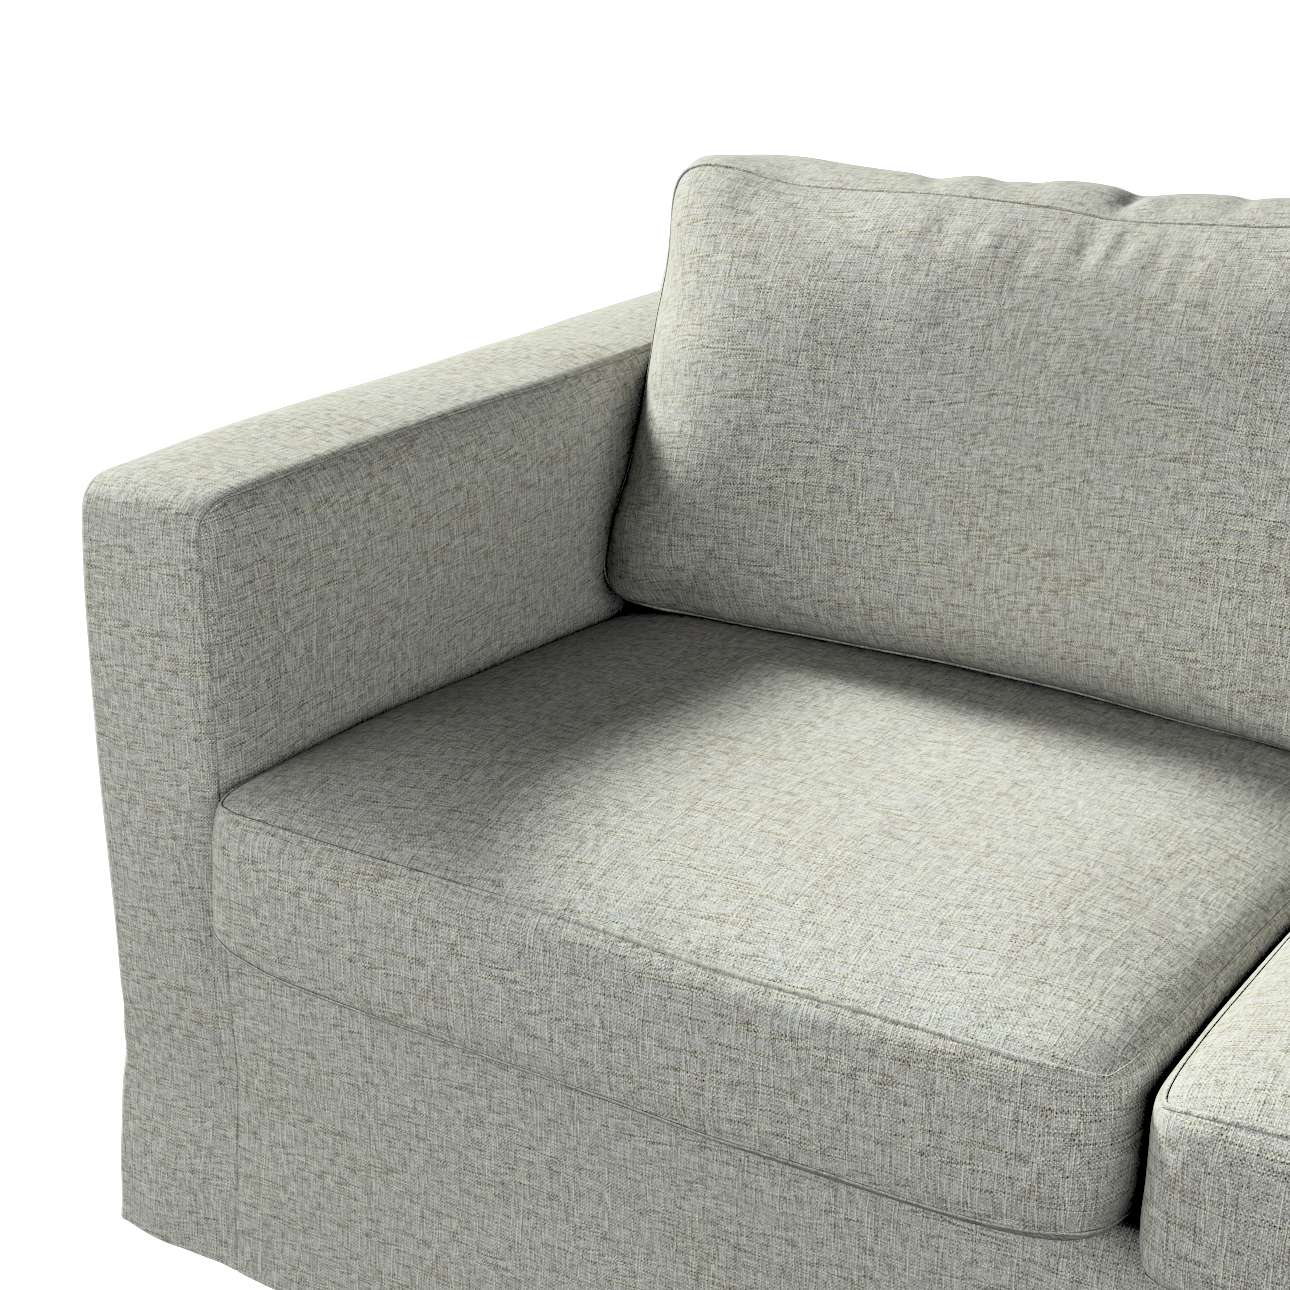 Floor length Karlstad 2-seater sofa cover in collection Living, fabric: 106-96